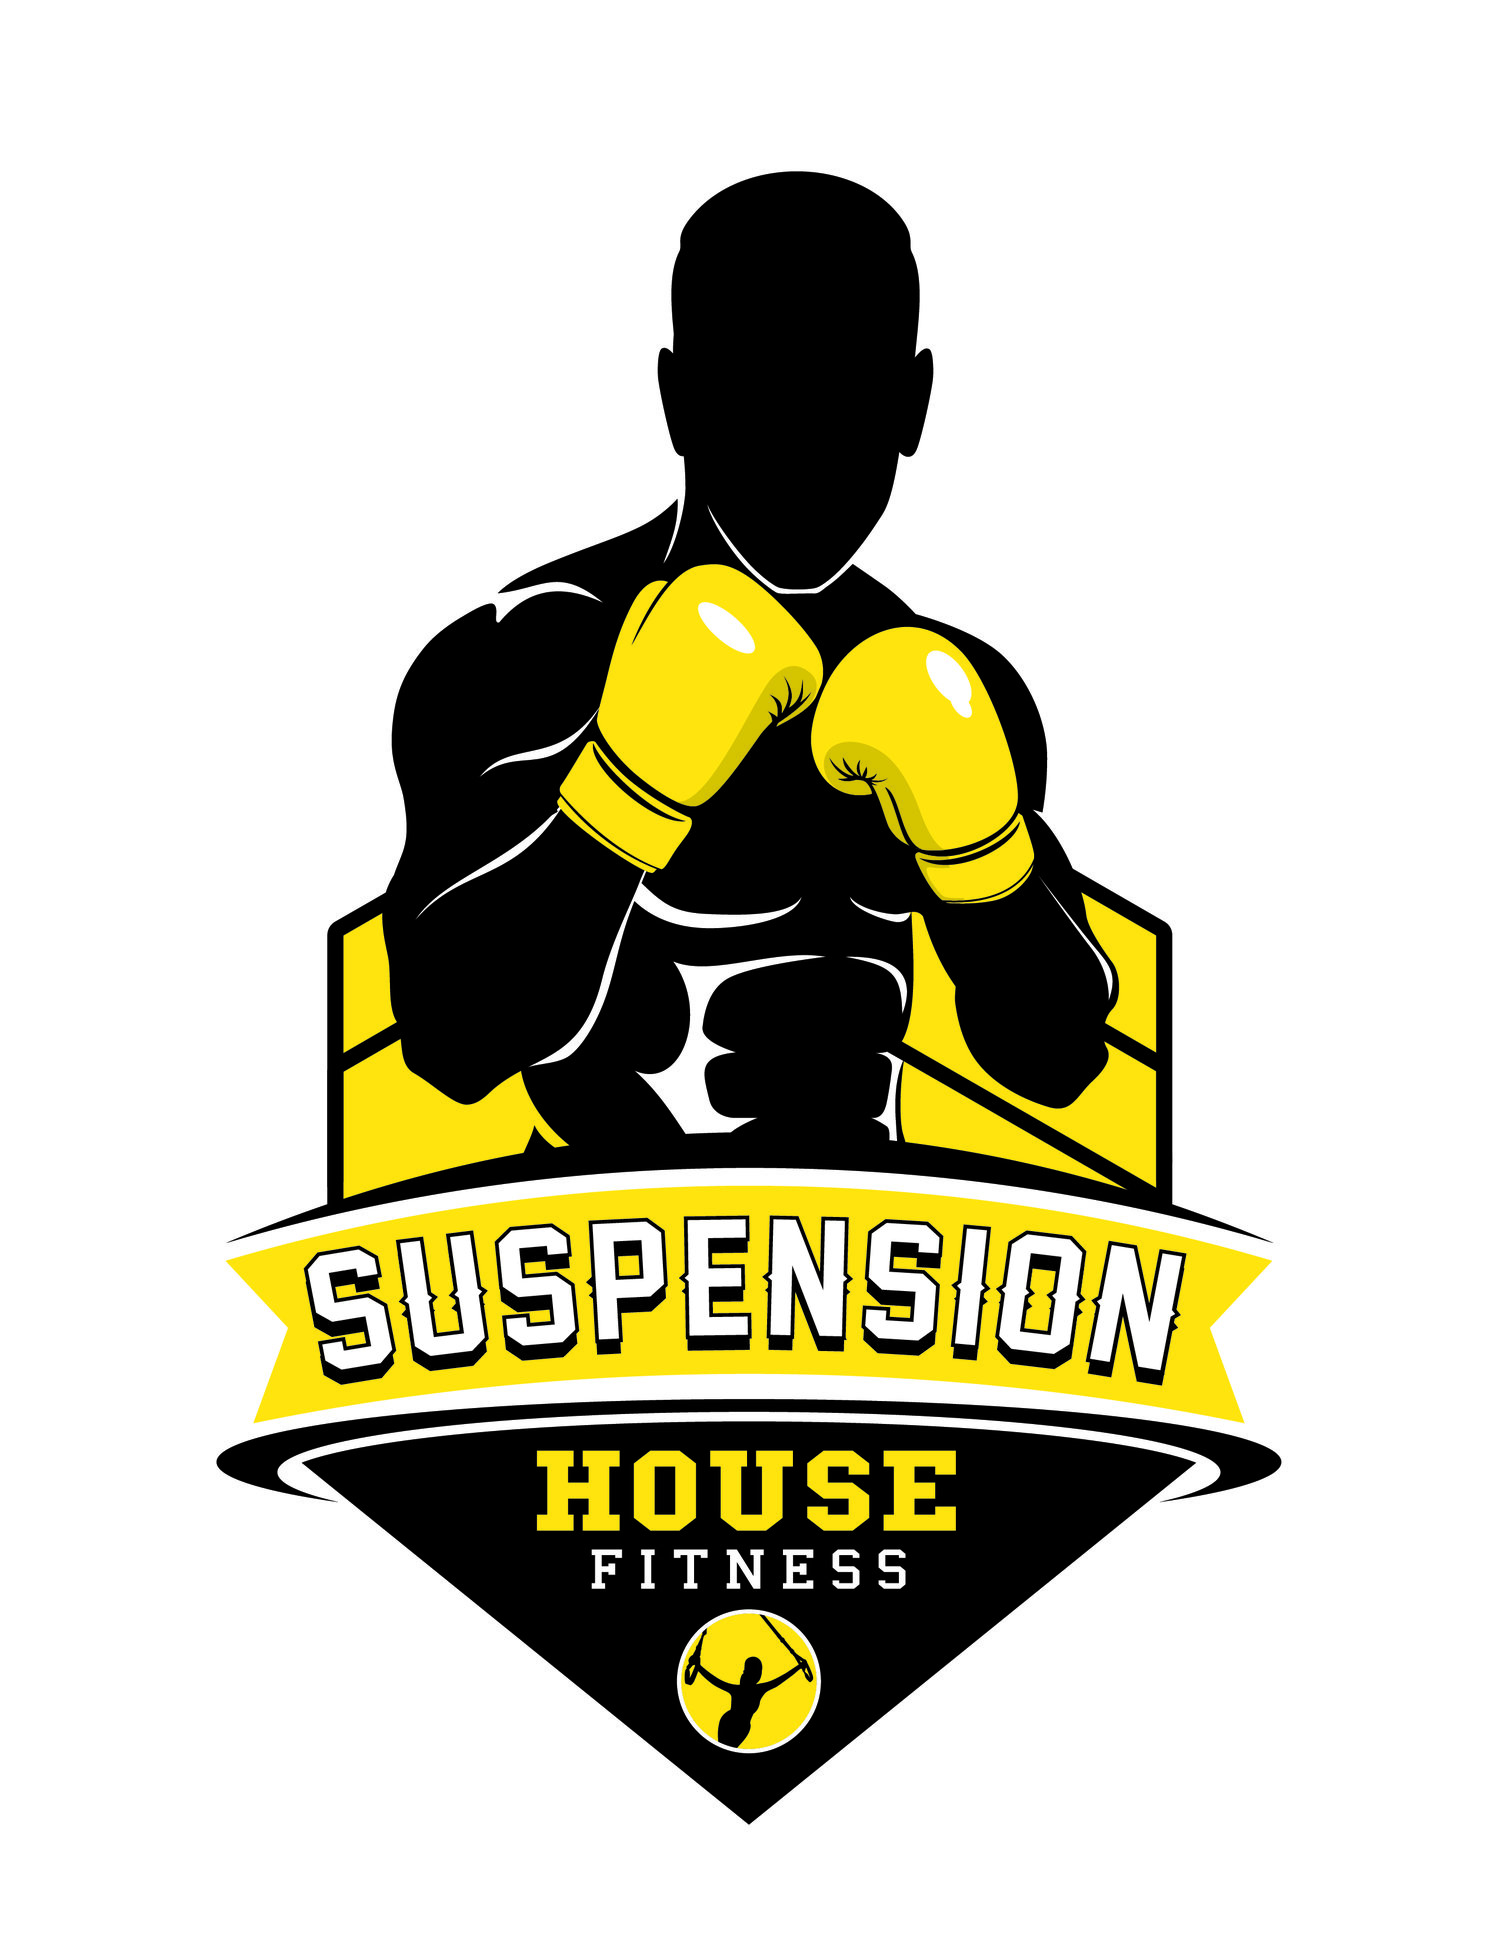 Suspension House Fitness